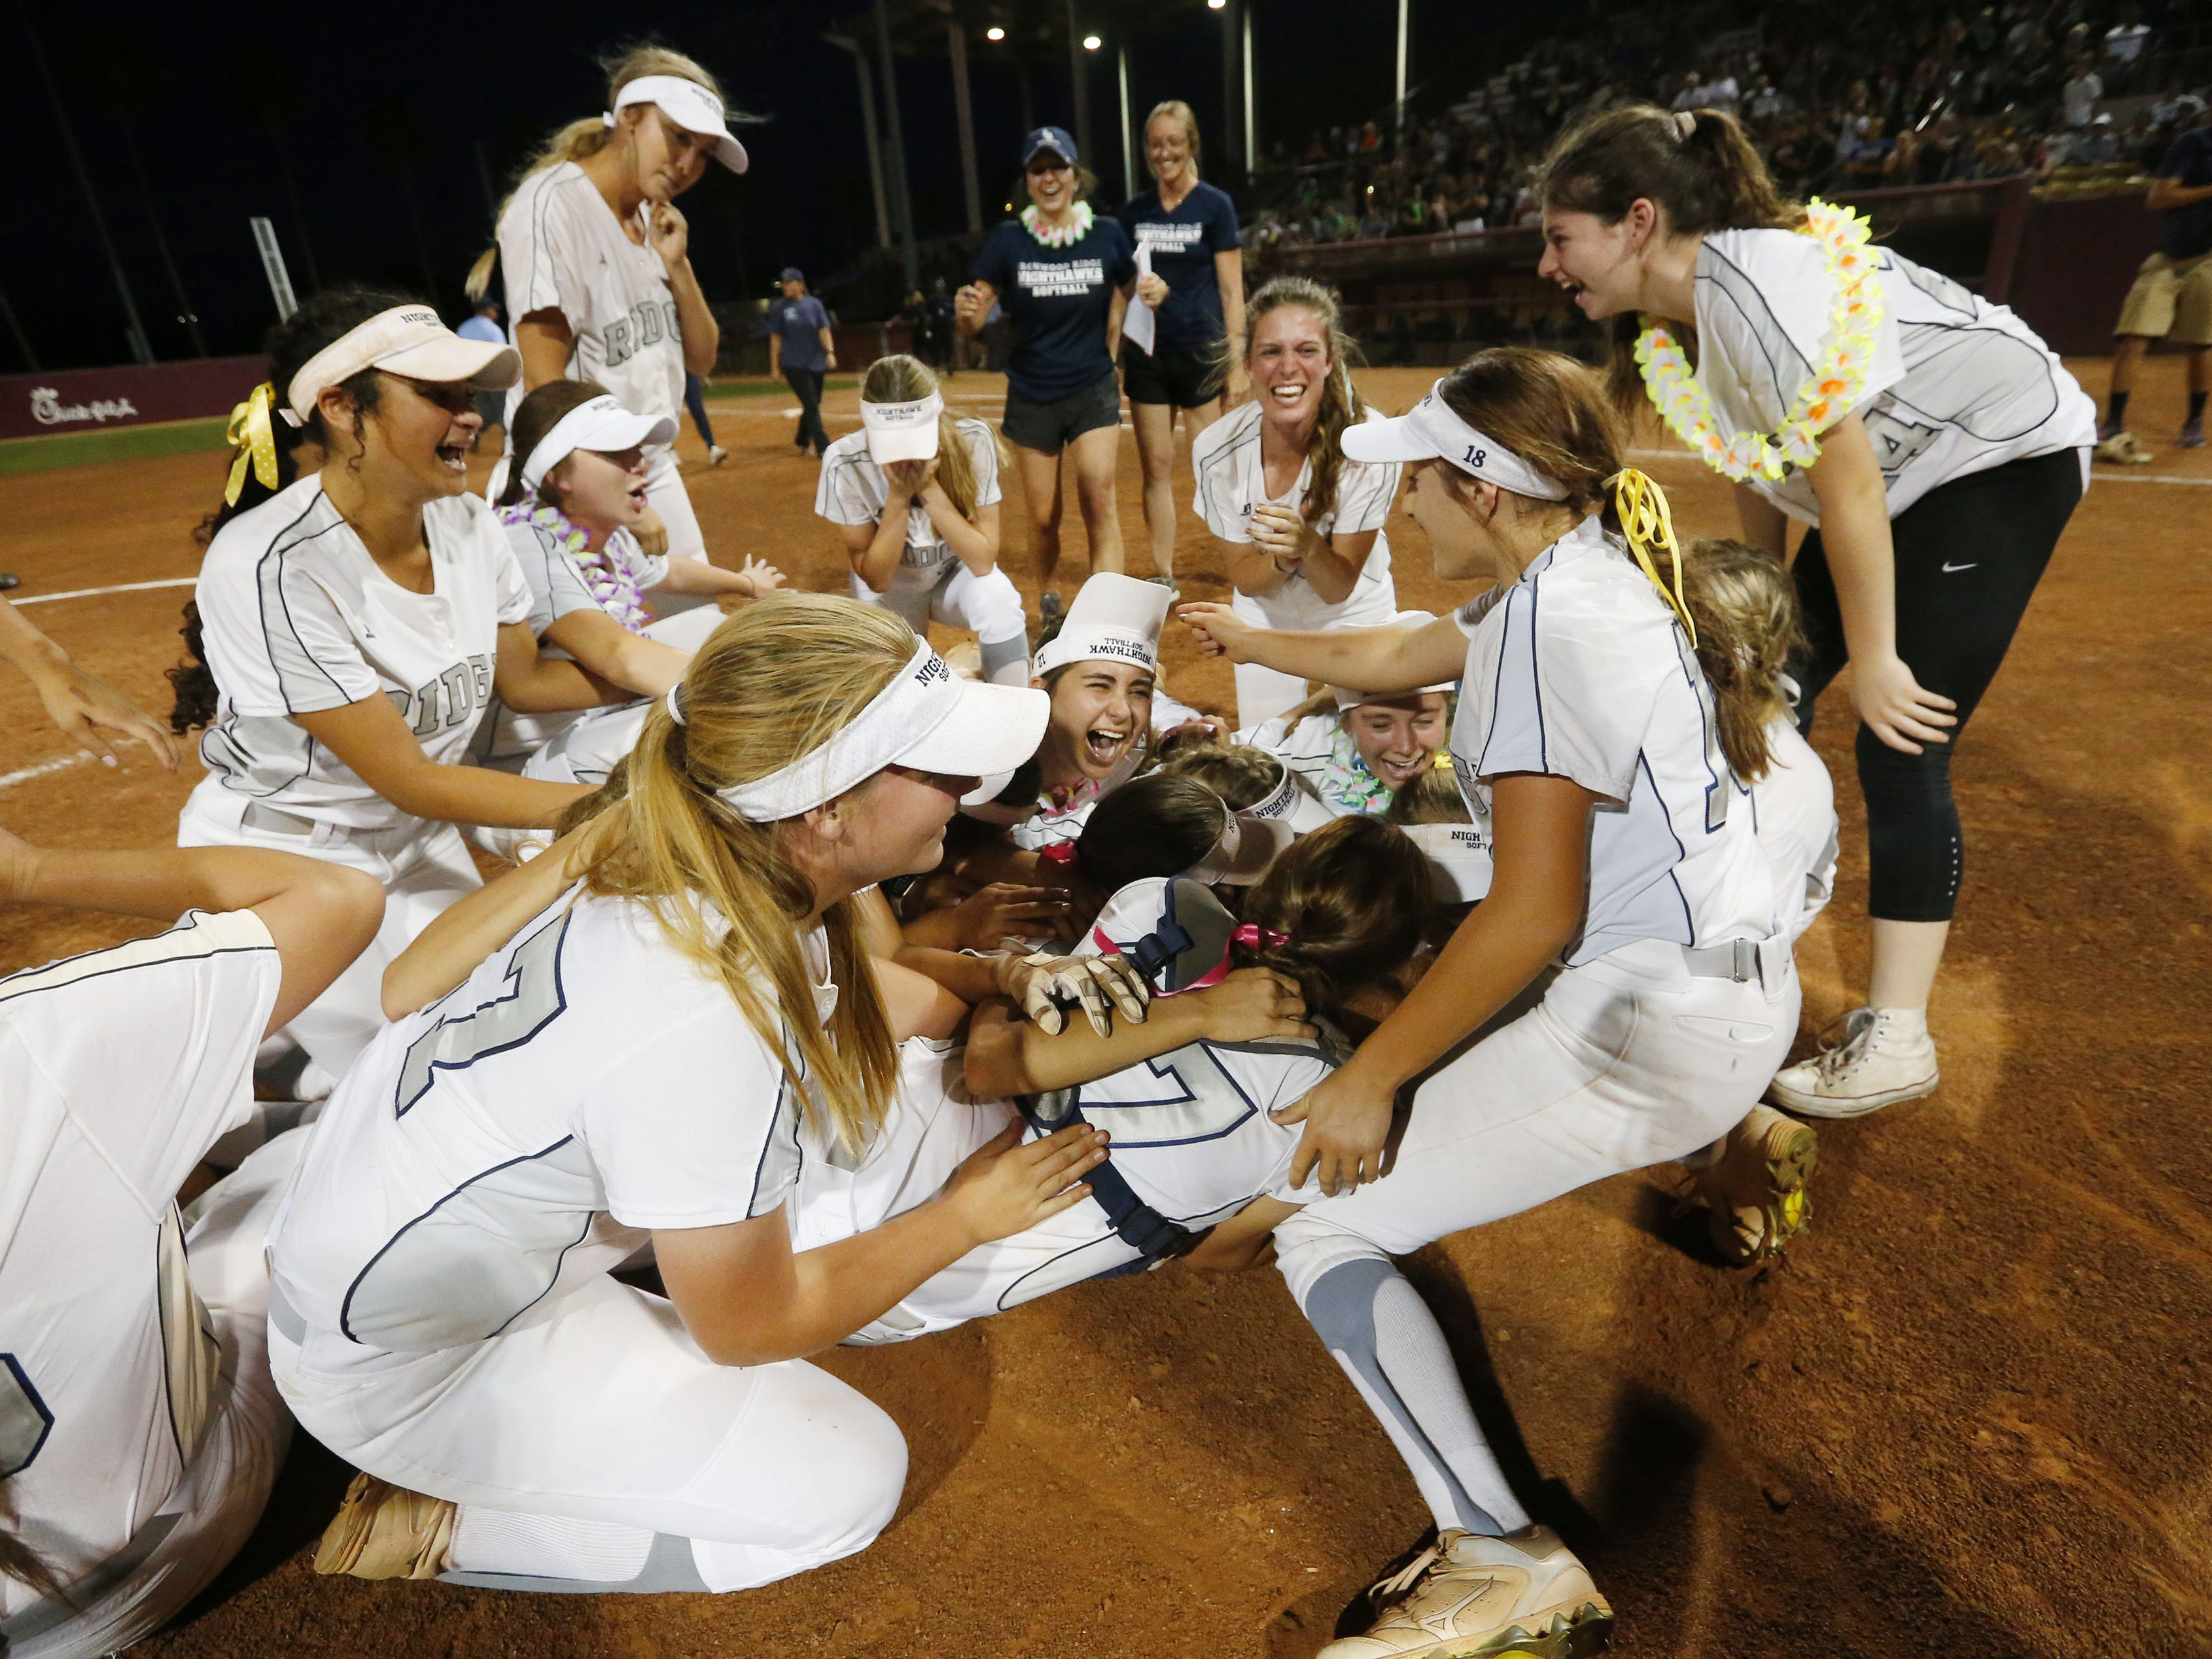 Ironwood Ridge players celebrate after beating Centennial 5-2 to win the 5A State Softball Championship in Tempe, Ariz. May 13, 2019.